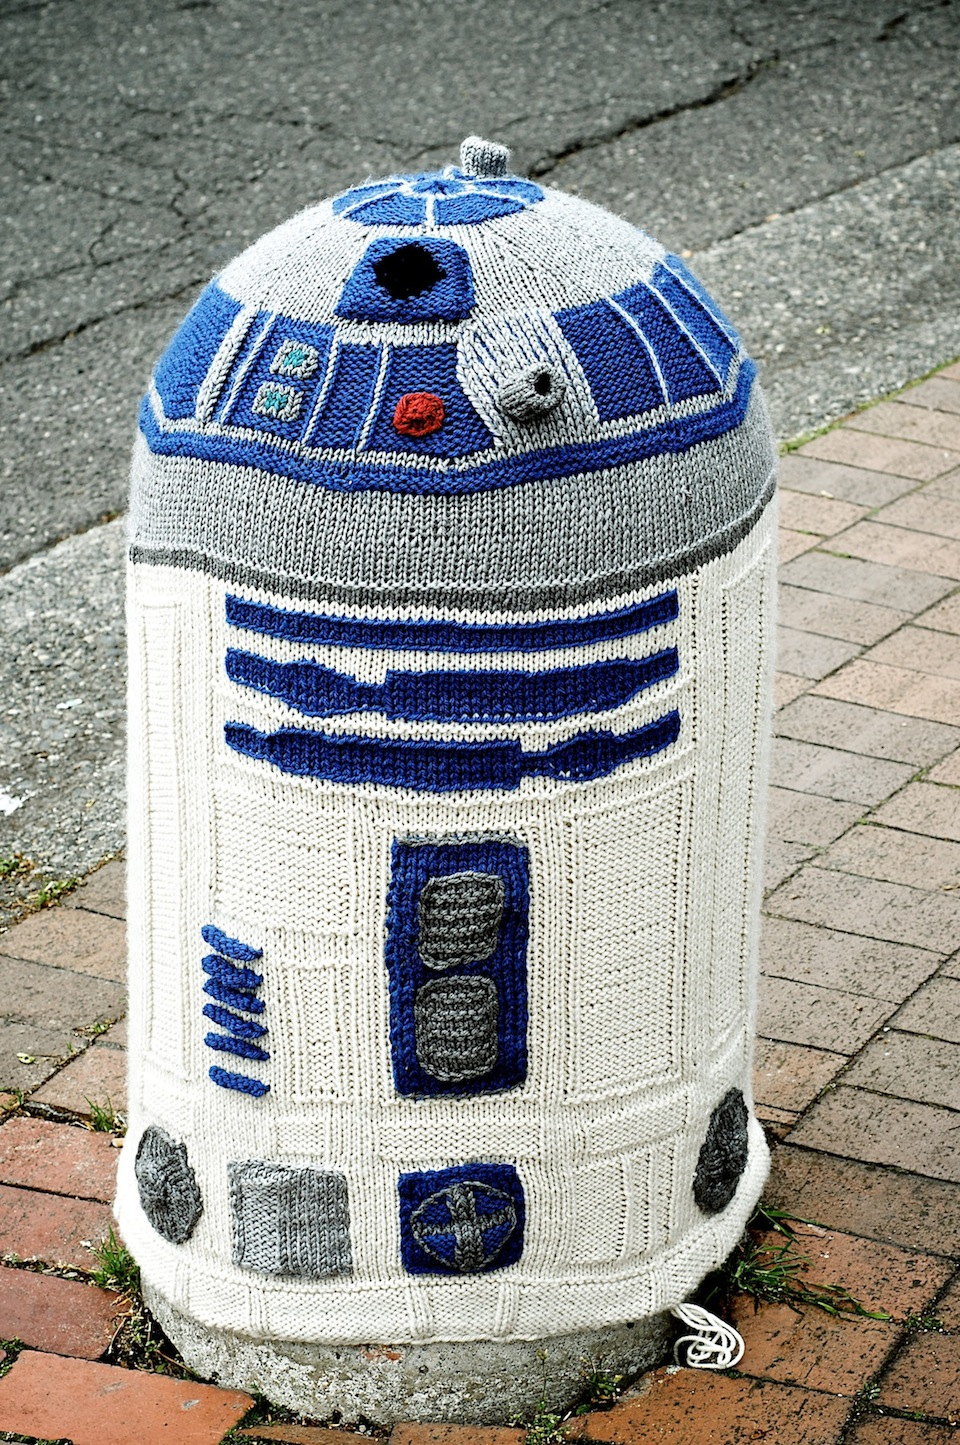 Yarn Bombing - R2D2 in Bellingham, Washington, USA